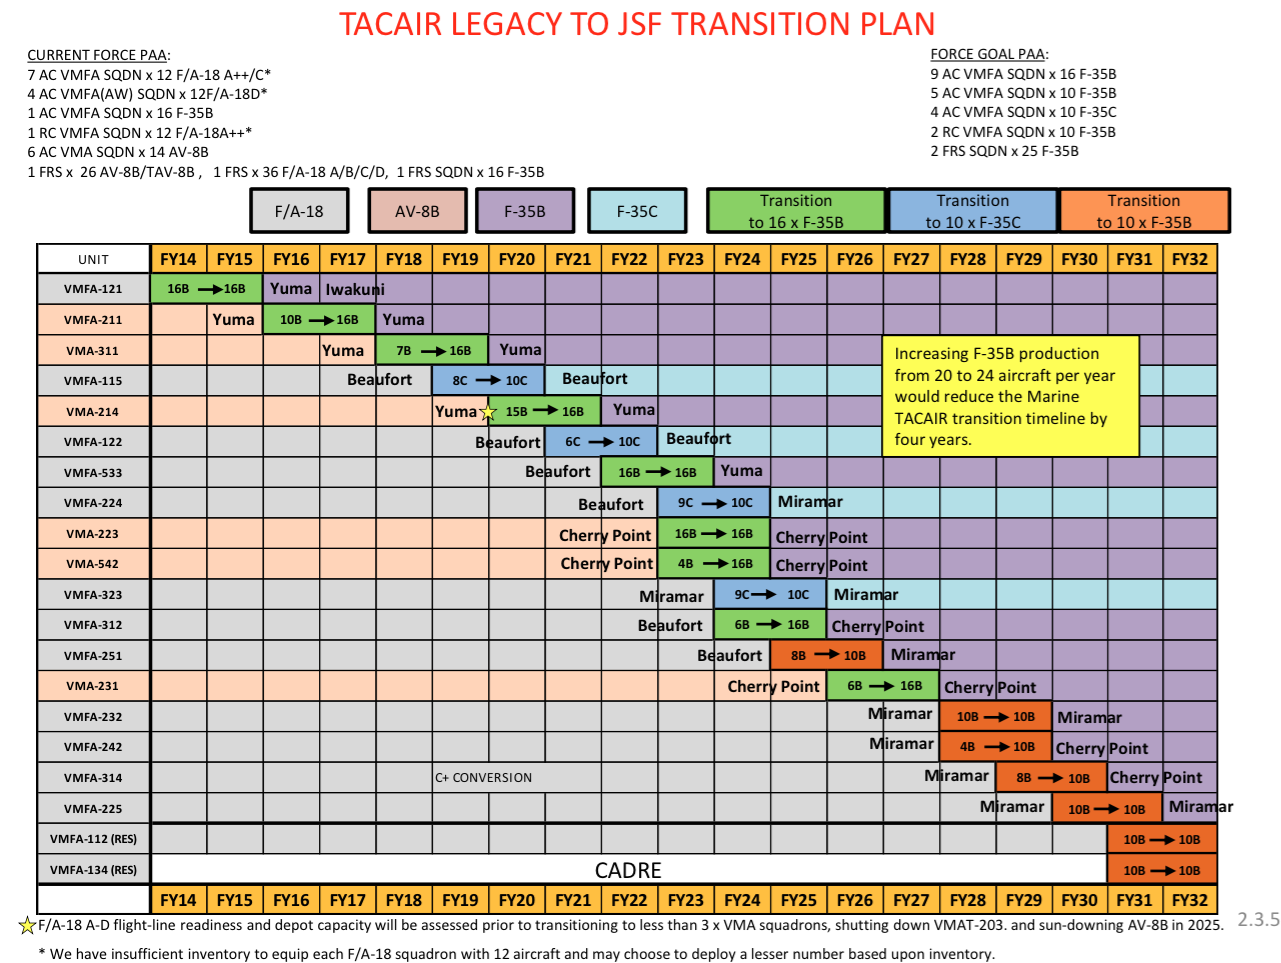 US Marine Corps tactical aviation plan into FY 2032 from the service's new 2015 aviation plan.